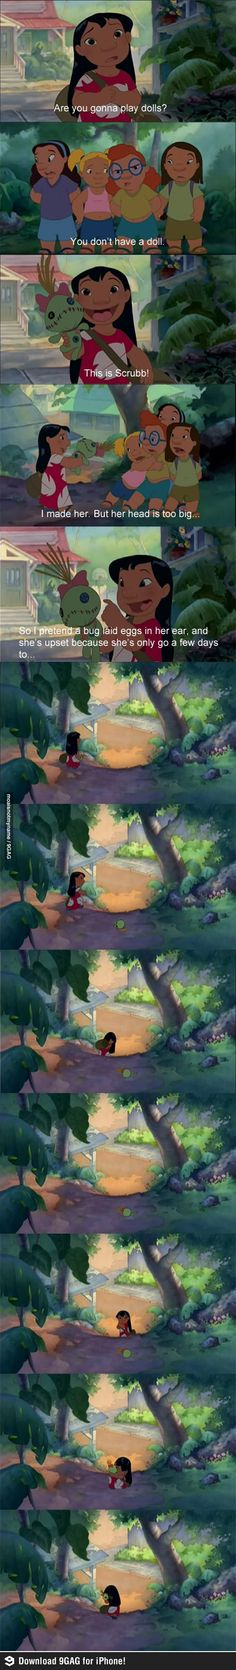 Lilo and Stitch is my favorite Disney/Pixar movie. I've watched it more times than I've watched any other of their films.